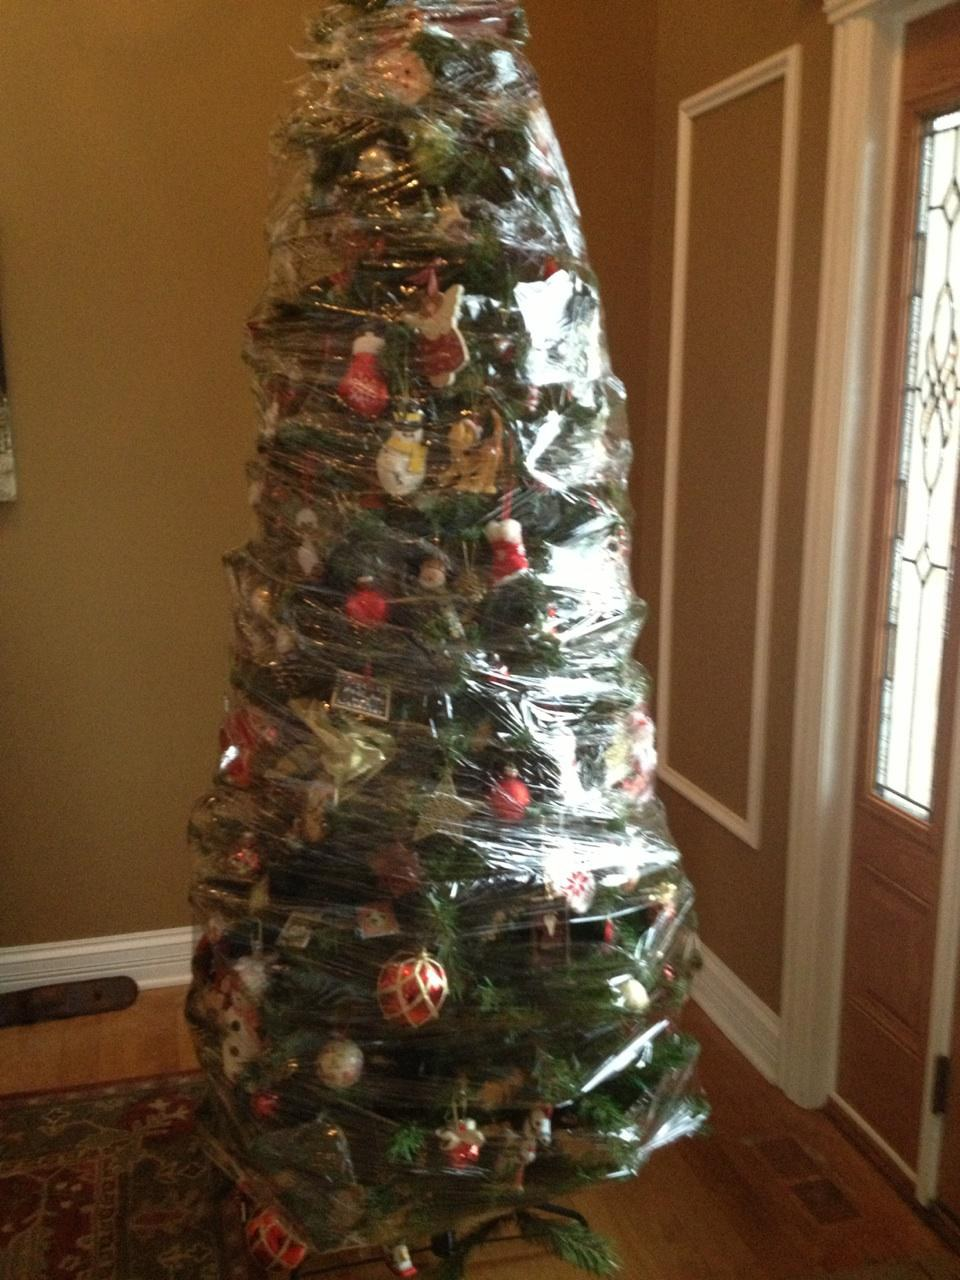 The Worst Thing About Christmas Decorations